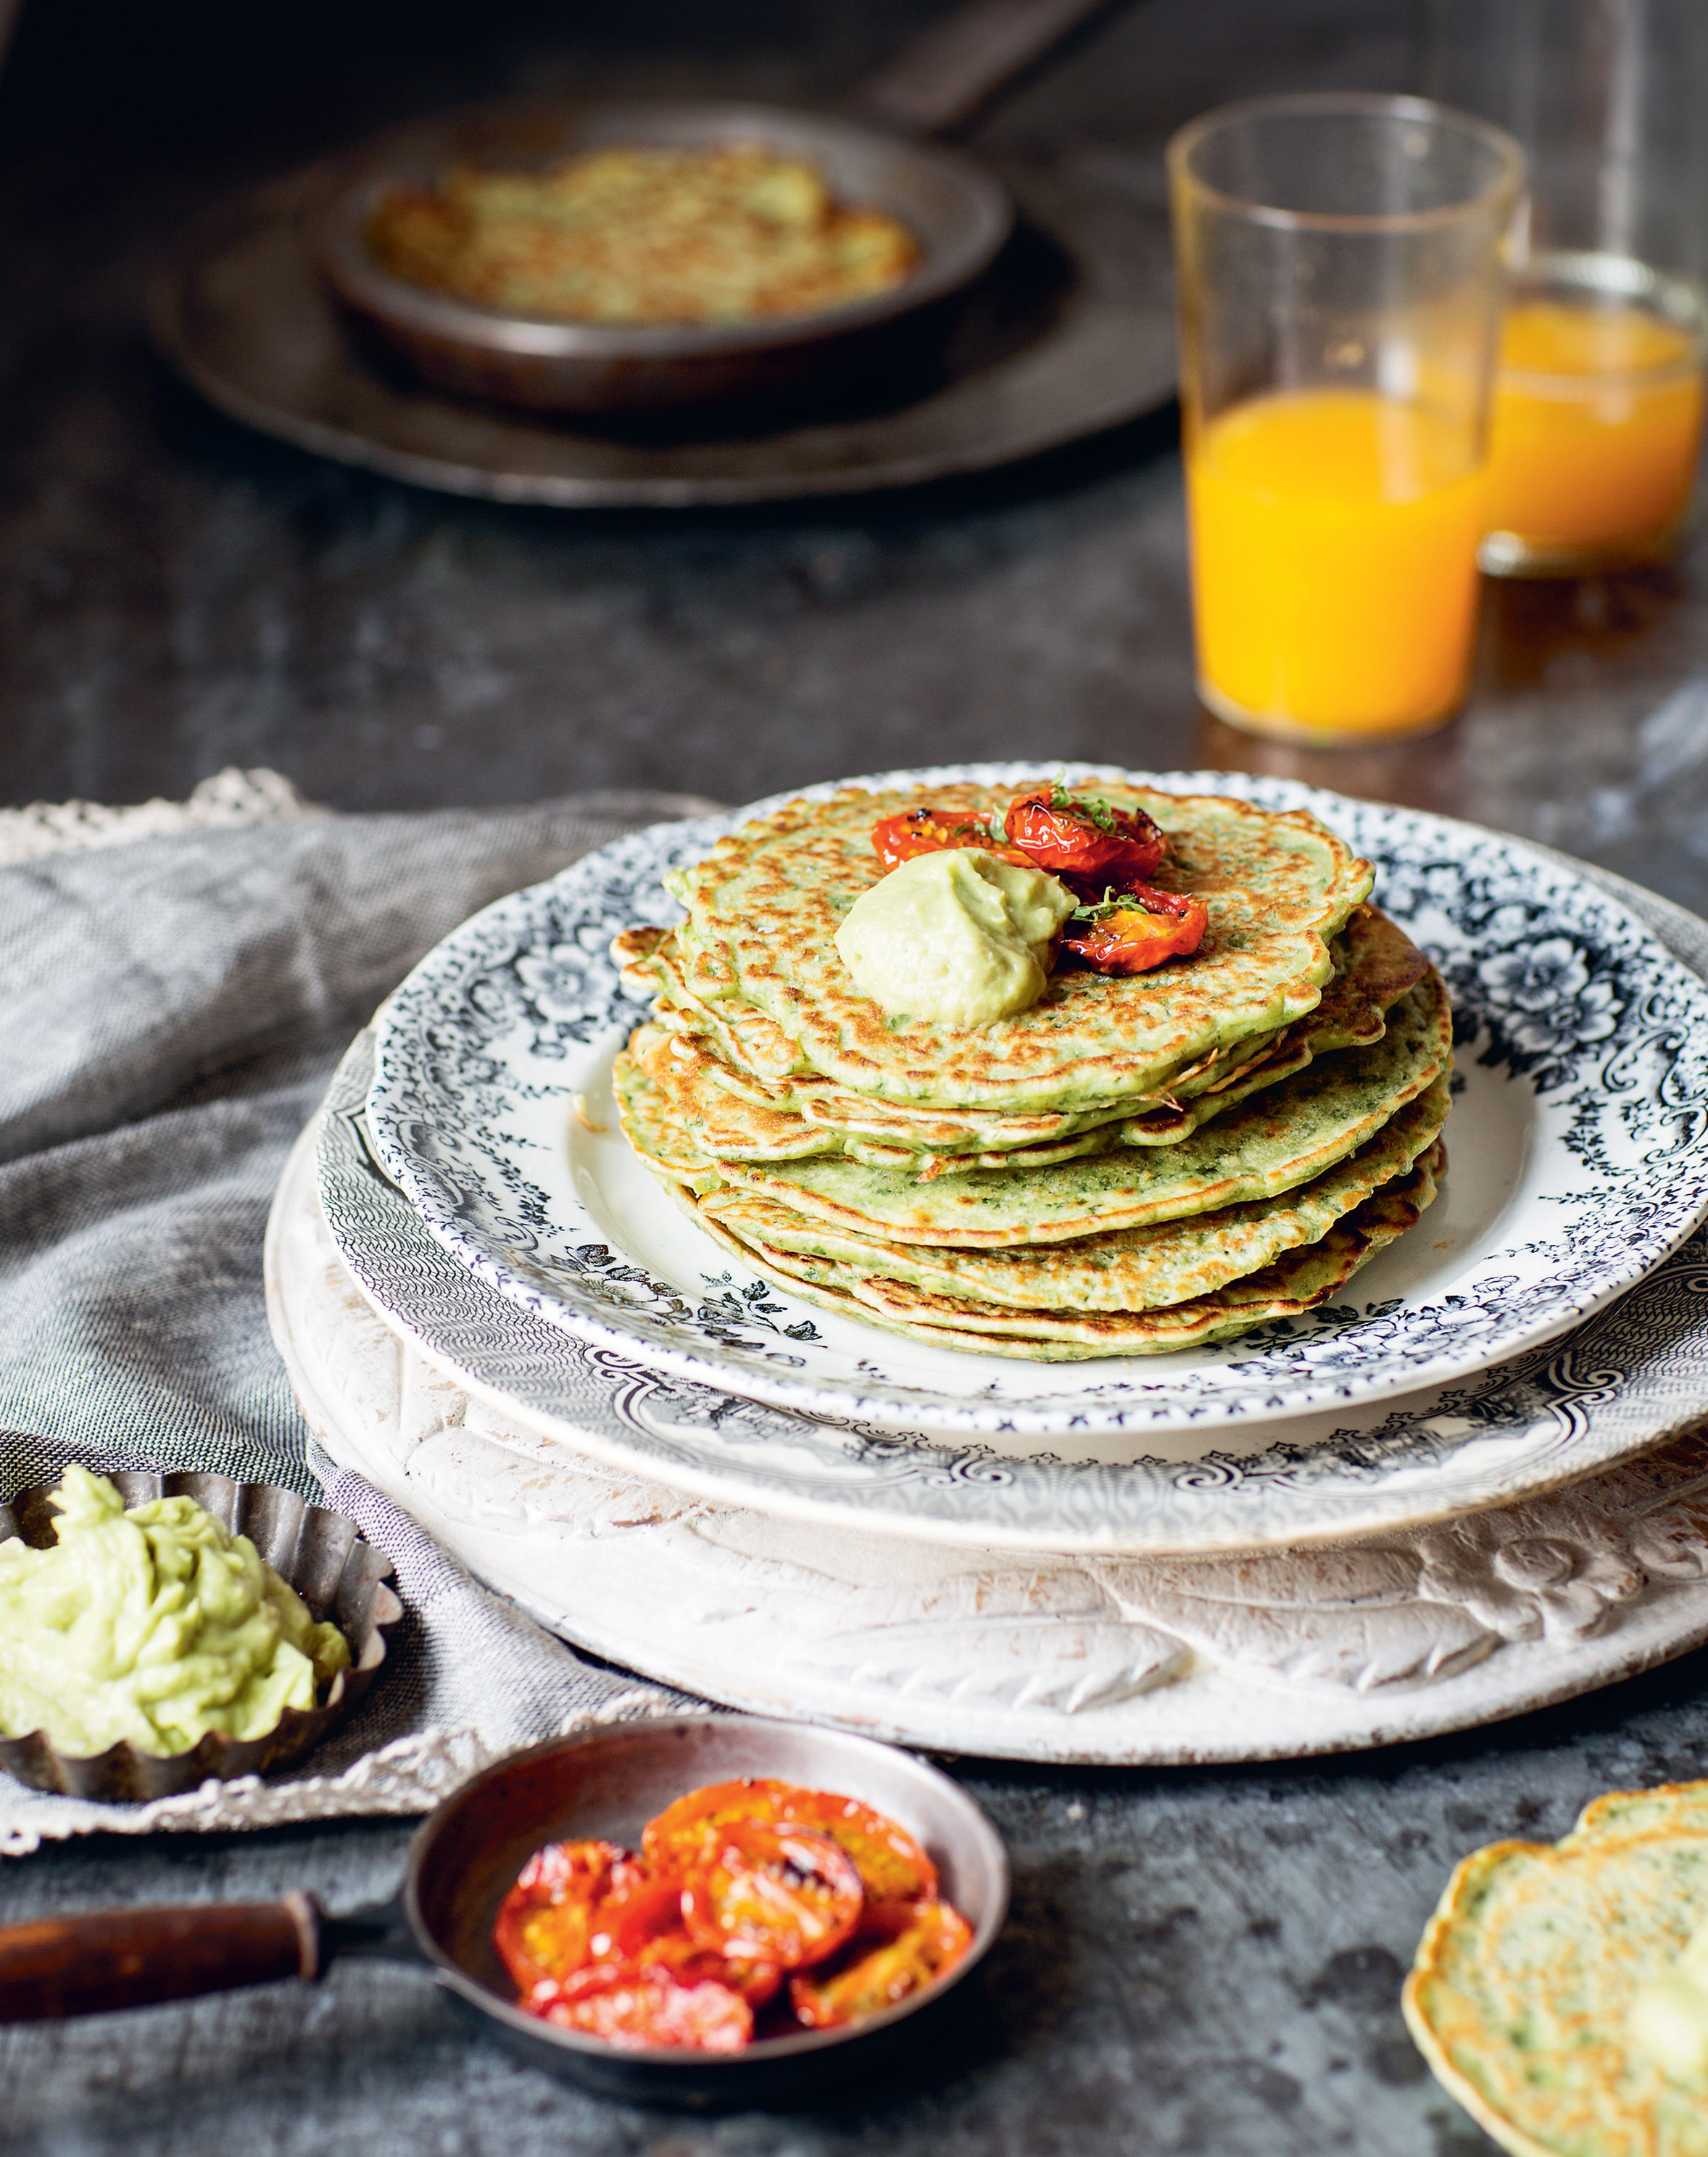 Kale + coriander pancakes with slow-roasted tomatoes + avocado cream